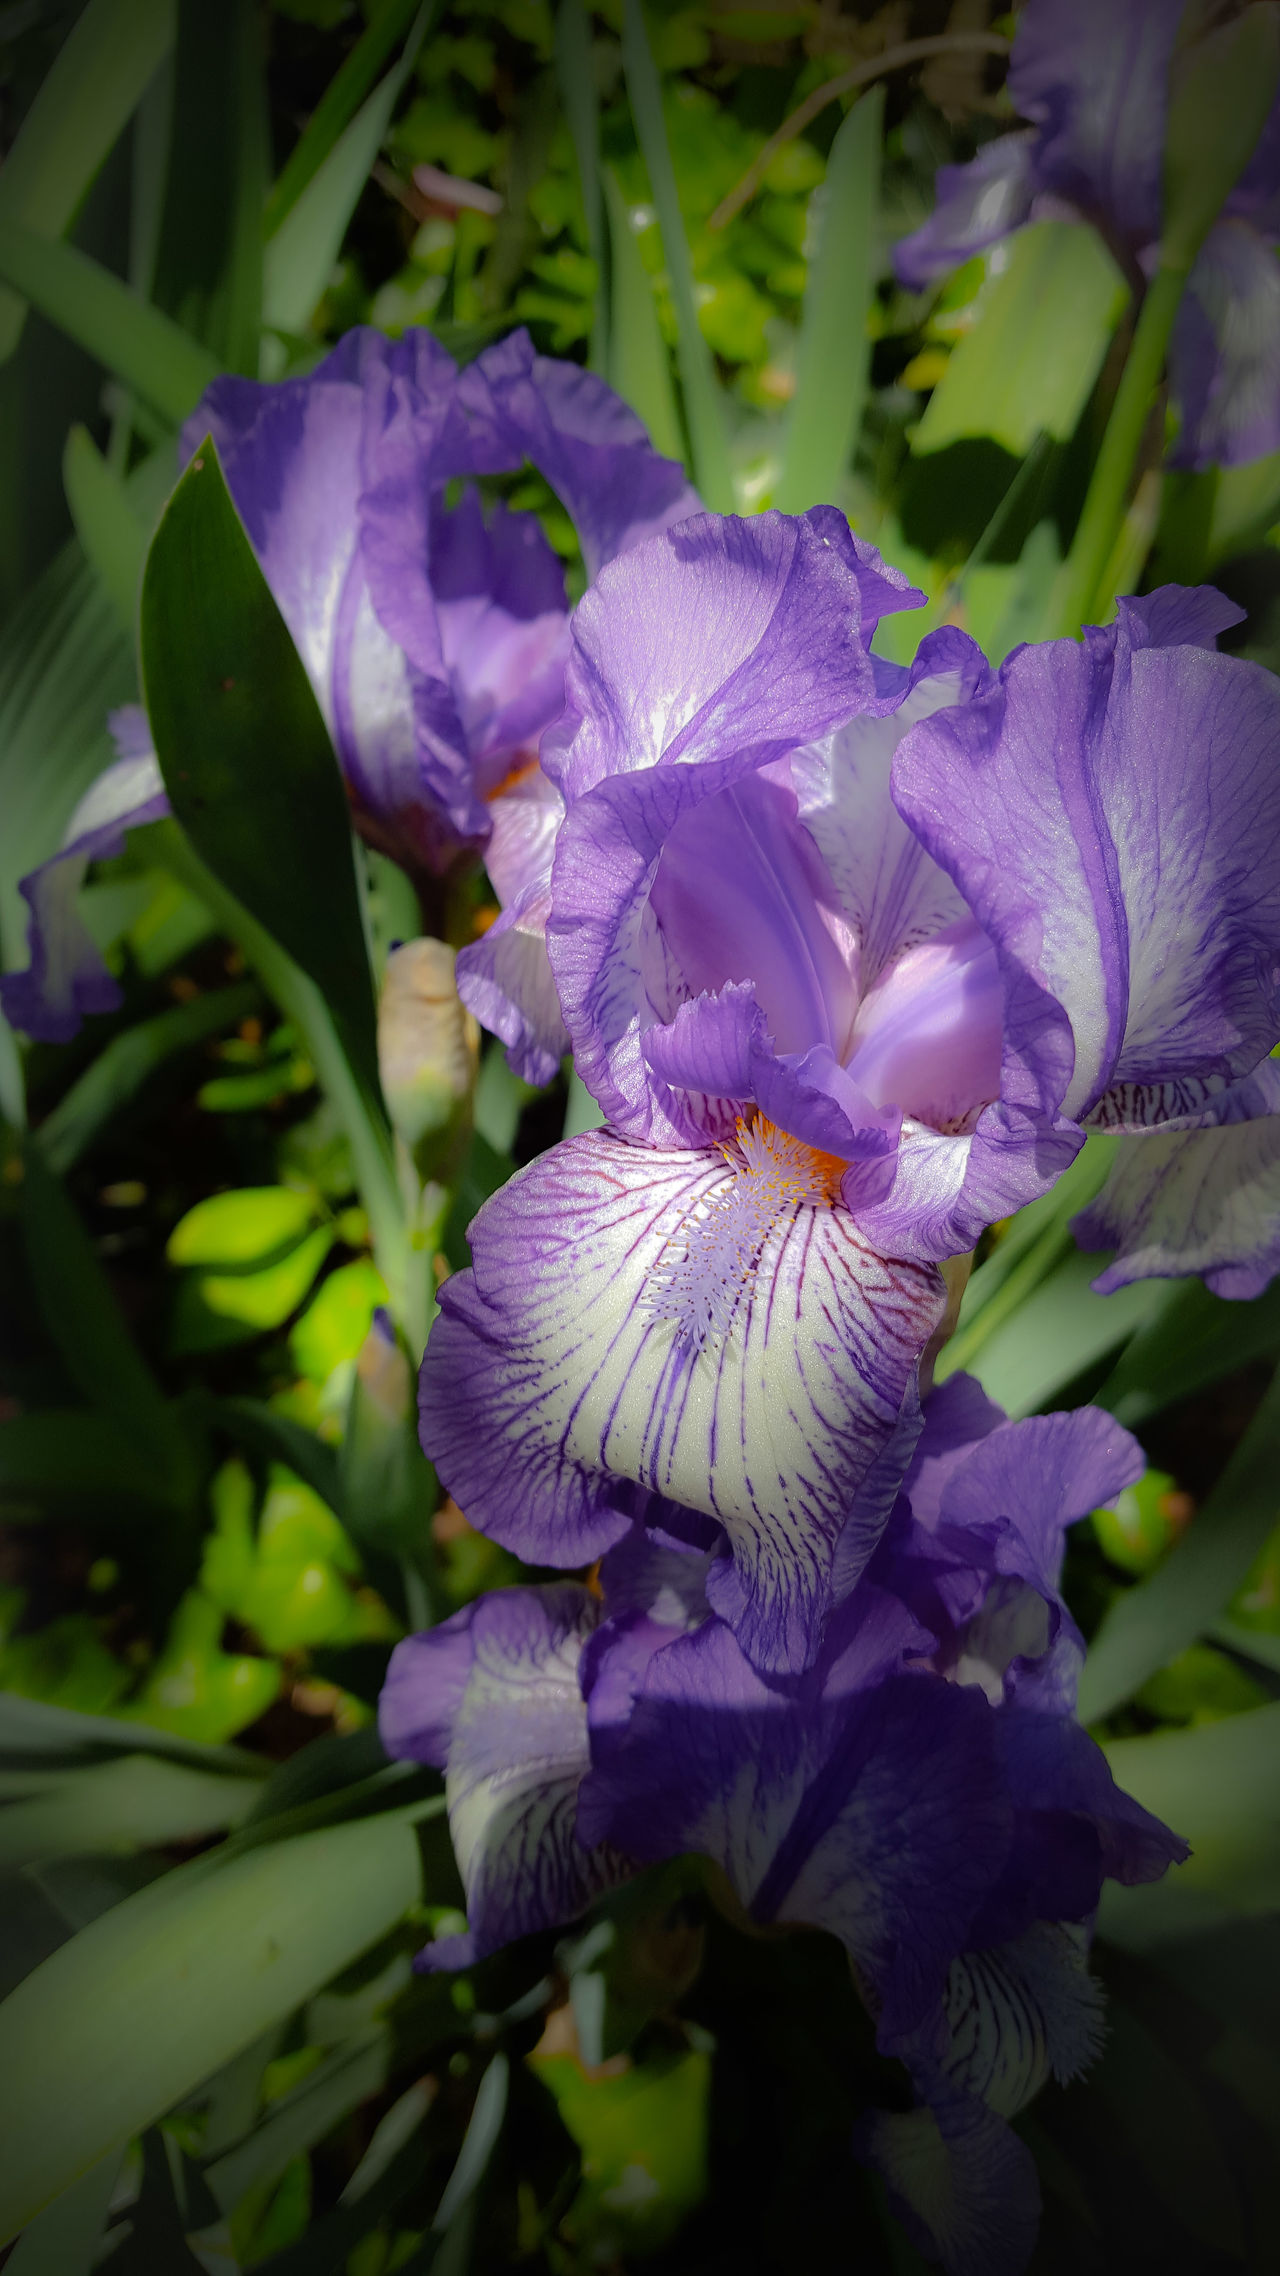 Iris Irises In The Morning Light Flower Flowers,Plants & Garden Flowers, Nature And Beauty Purple Flower Purple And White All Things Beautiful All Things Purple Garden Photography